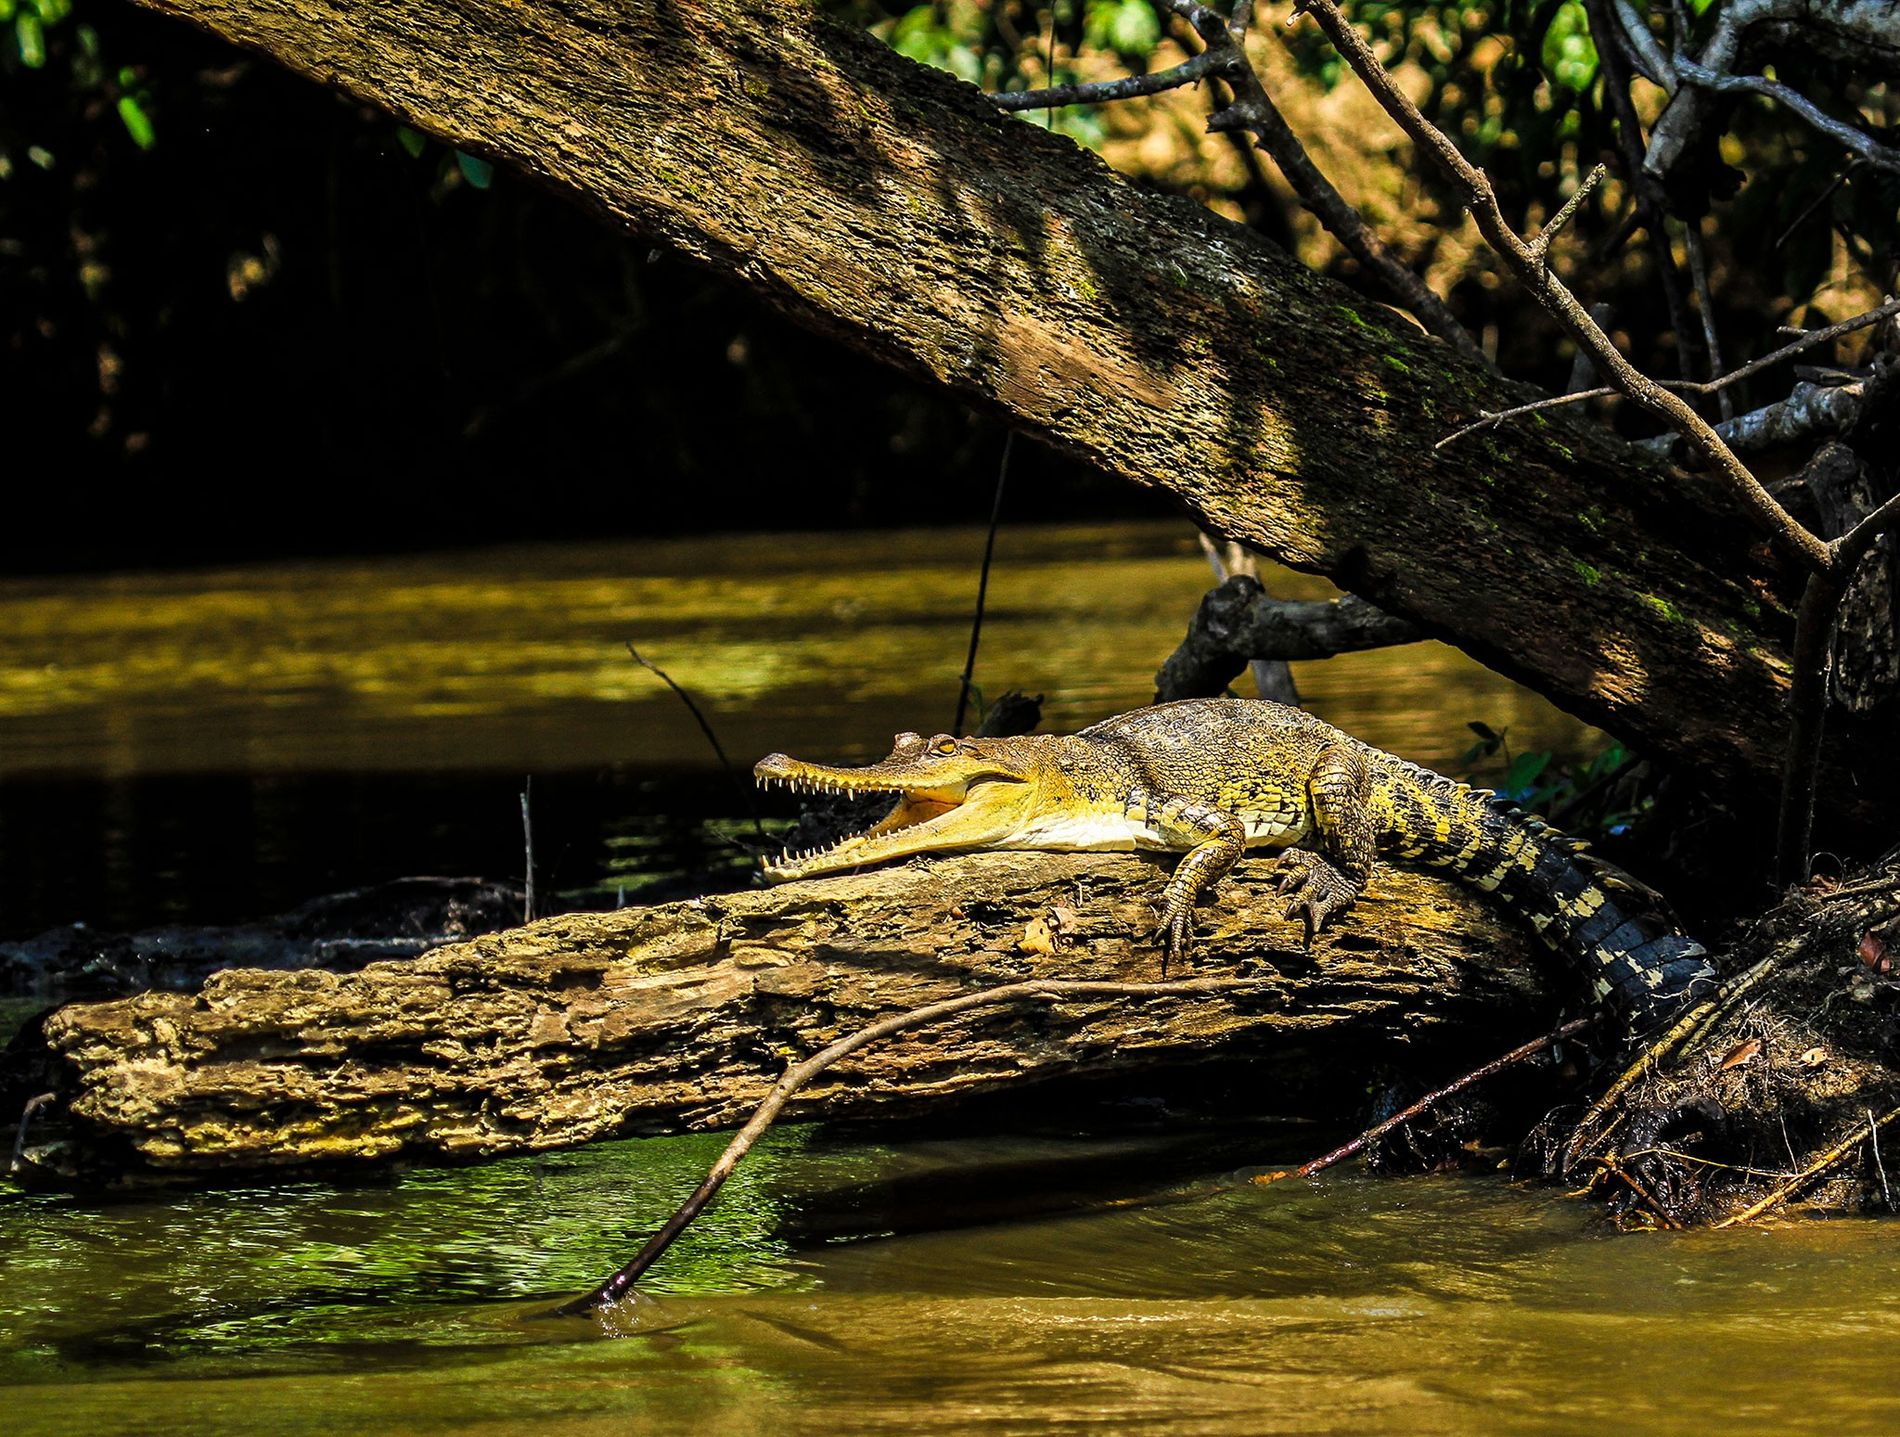 The new species, the Central African slender-snouted crocodile, 'Mecistops leptorhynchus', is the first to be fully described in more than 80 years.